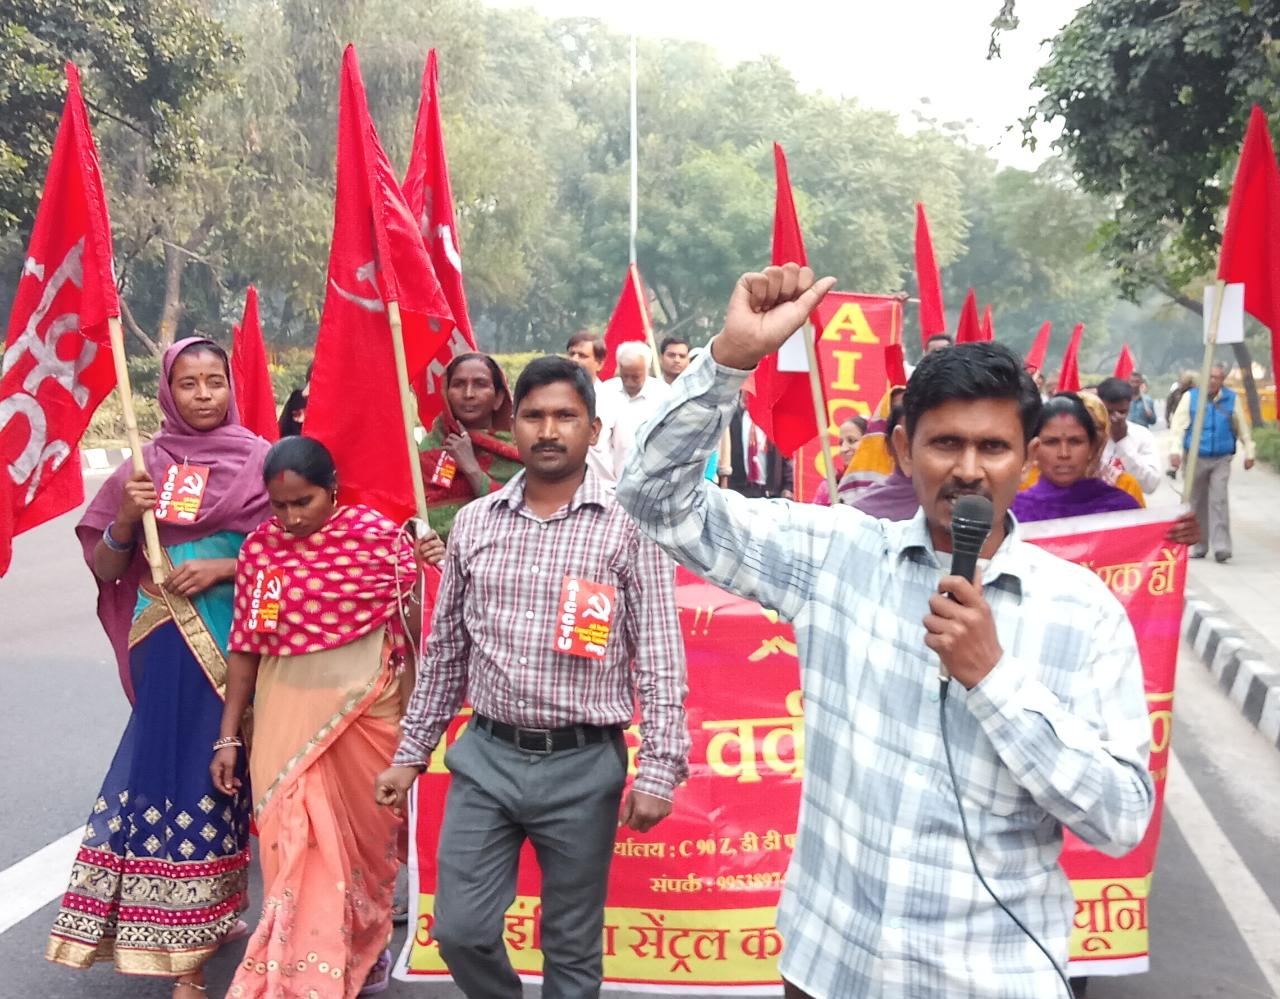 WORKERS PROTEST